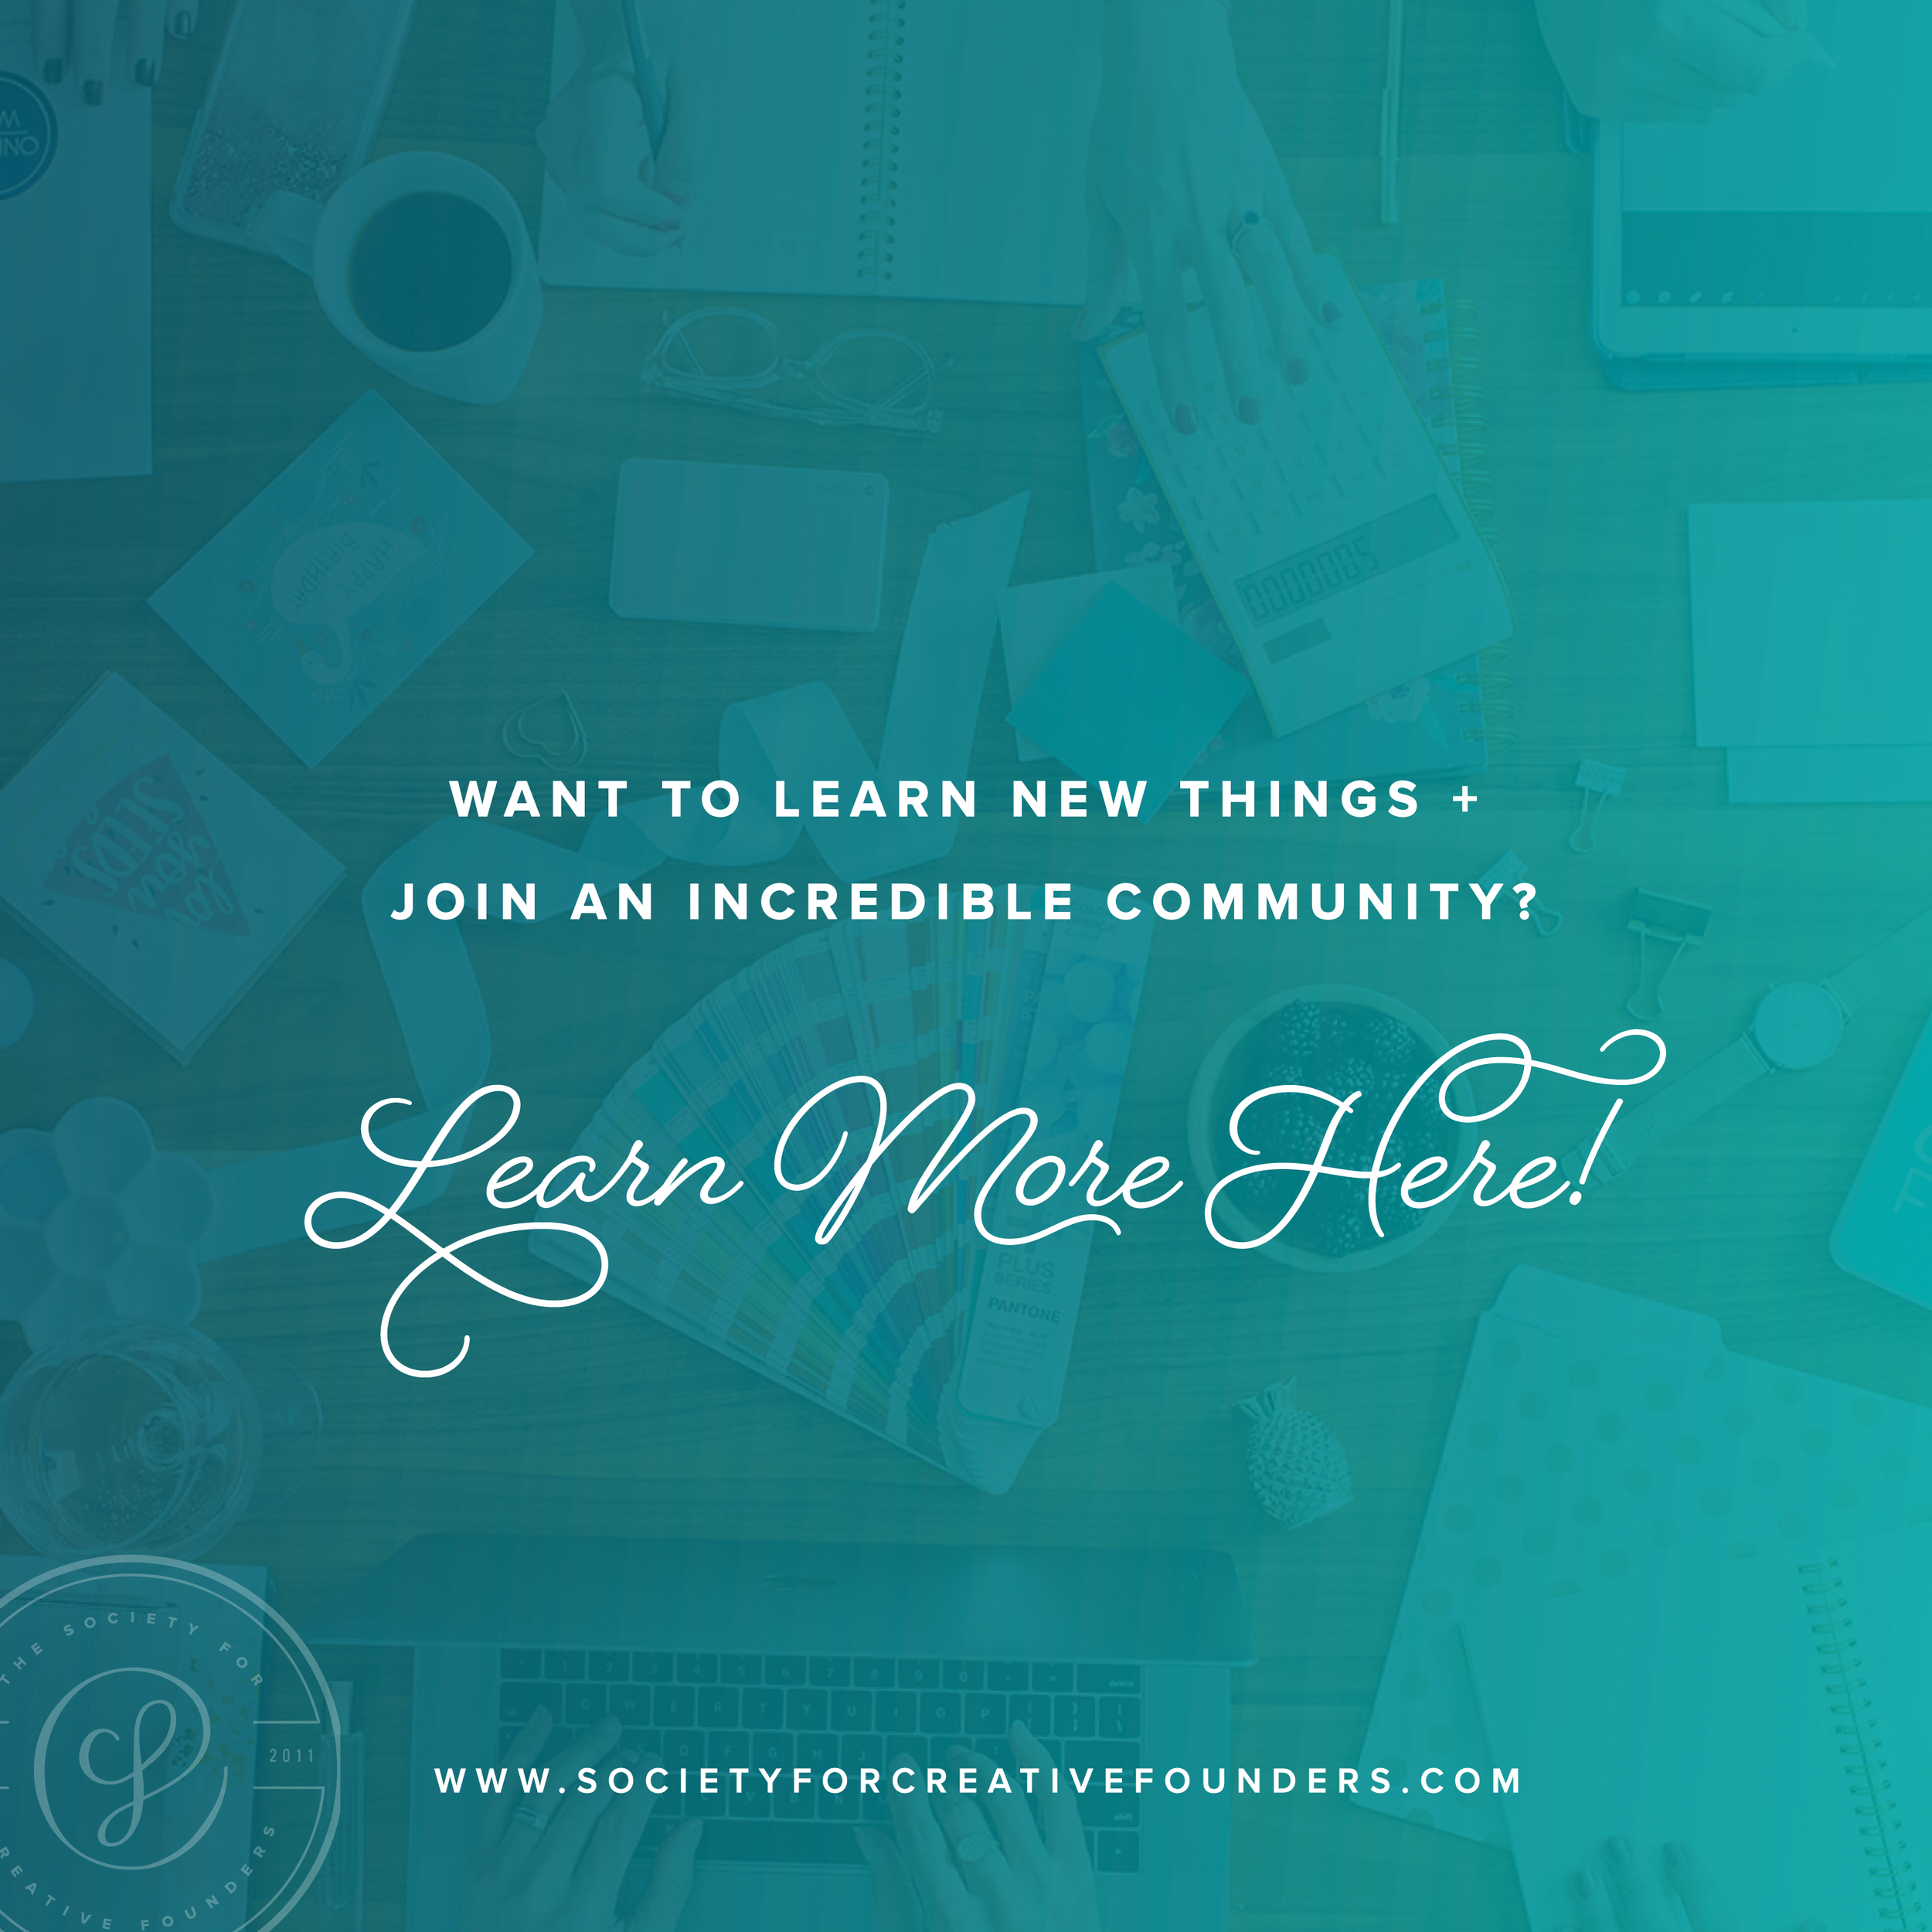 Join the Society for Creative Founders Community